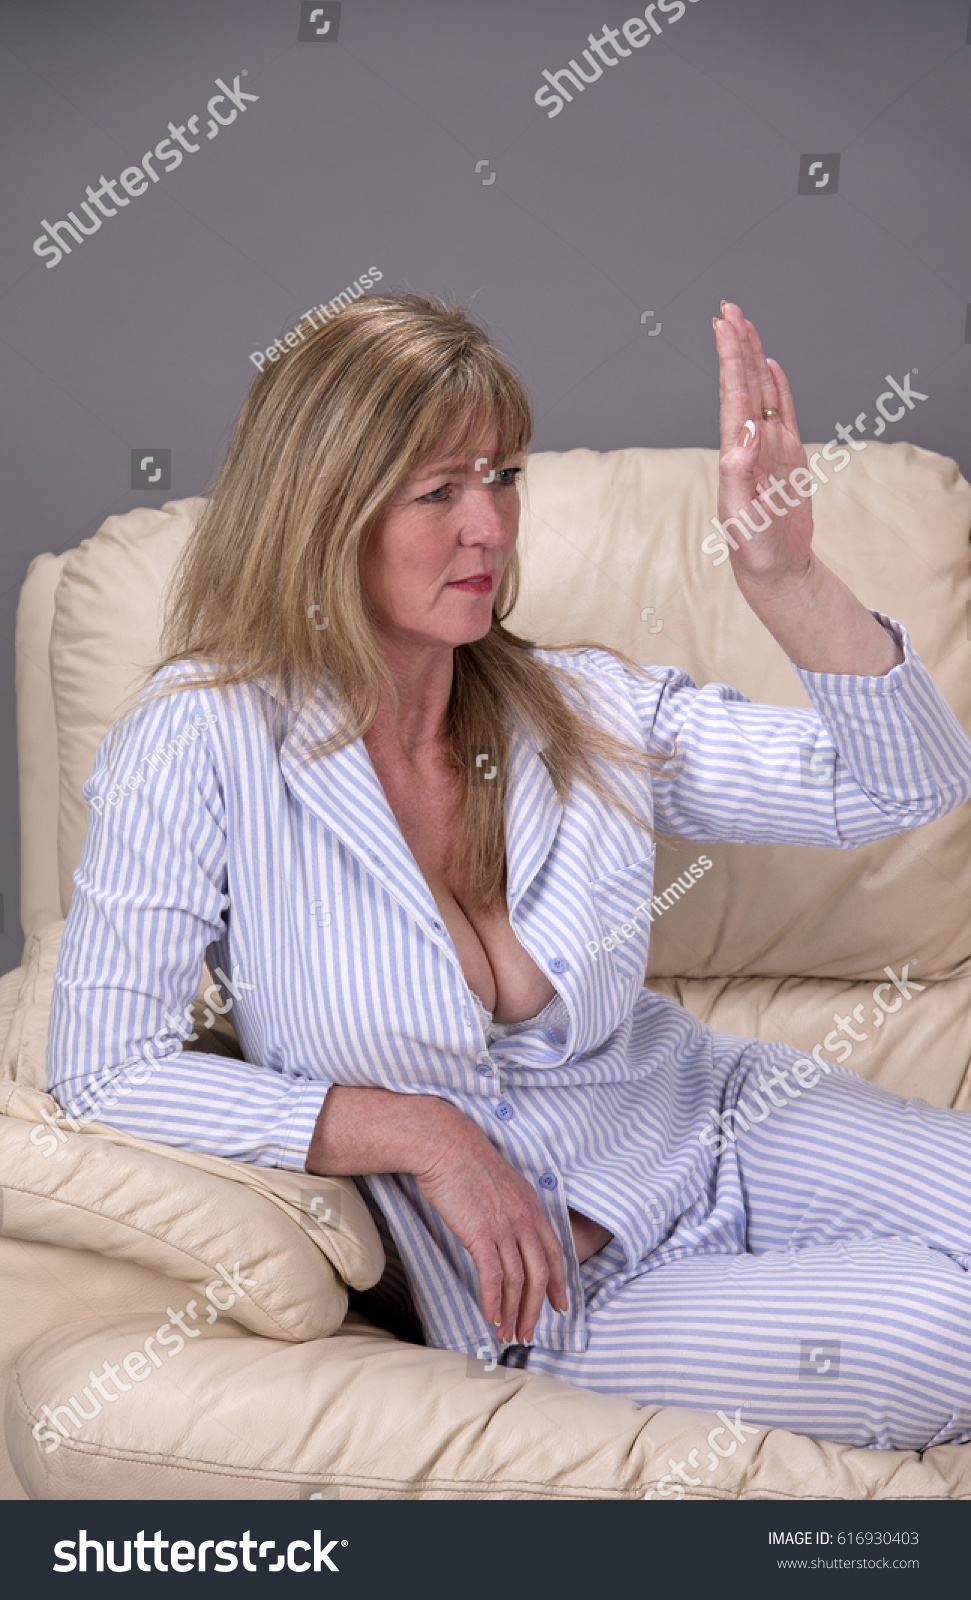 body language sitting with hands between legs